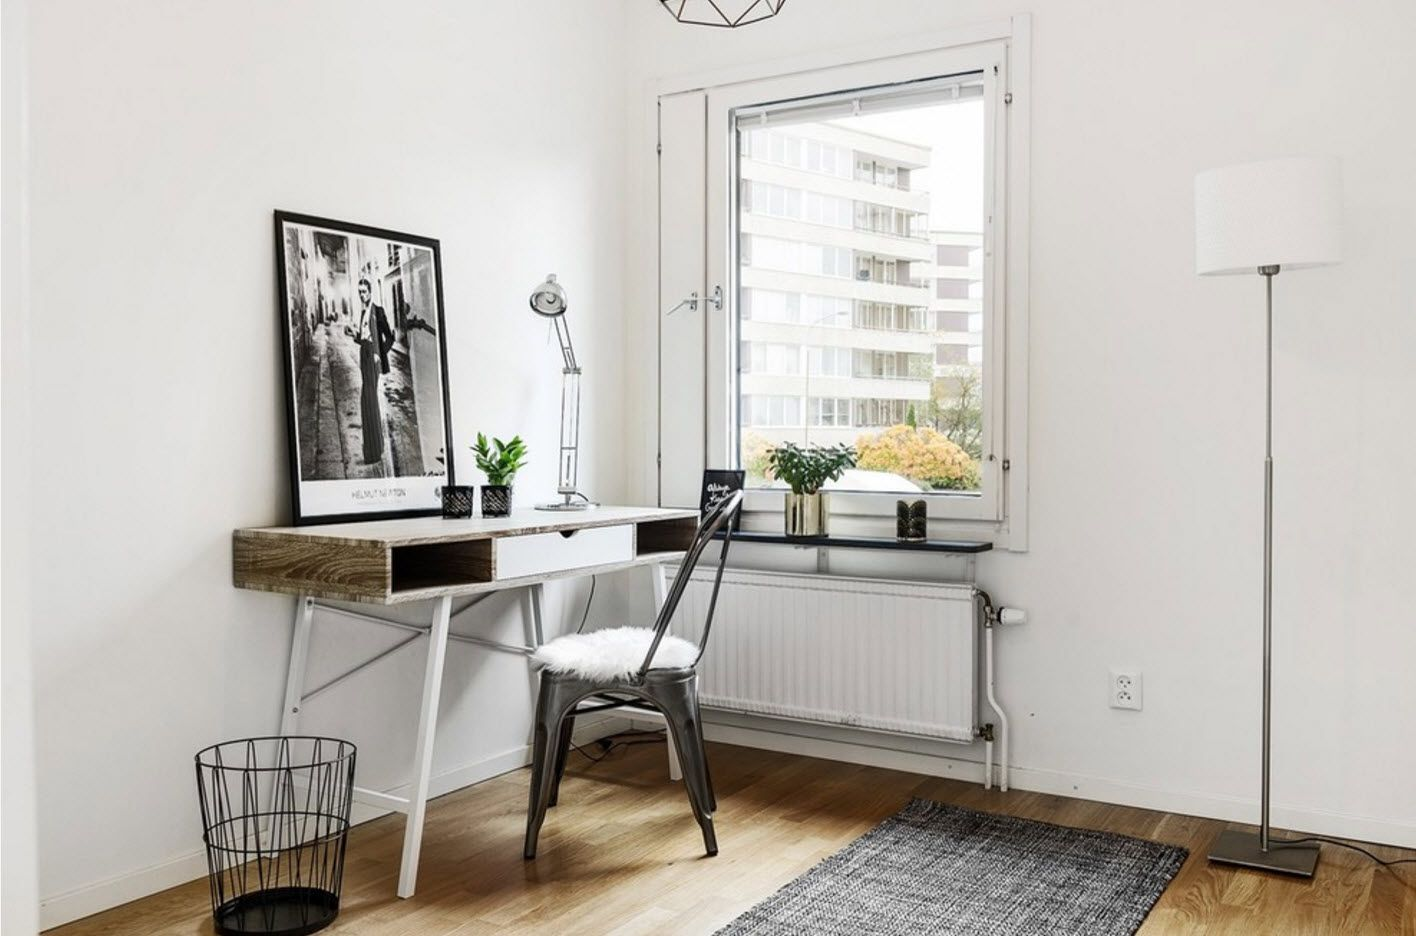 top 100 modern home office design trends 2017 small design ideas top 100 modern home office design trends 2017 scandinavian style with light surfaces and multifunctional